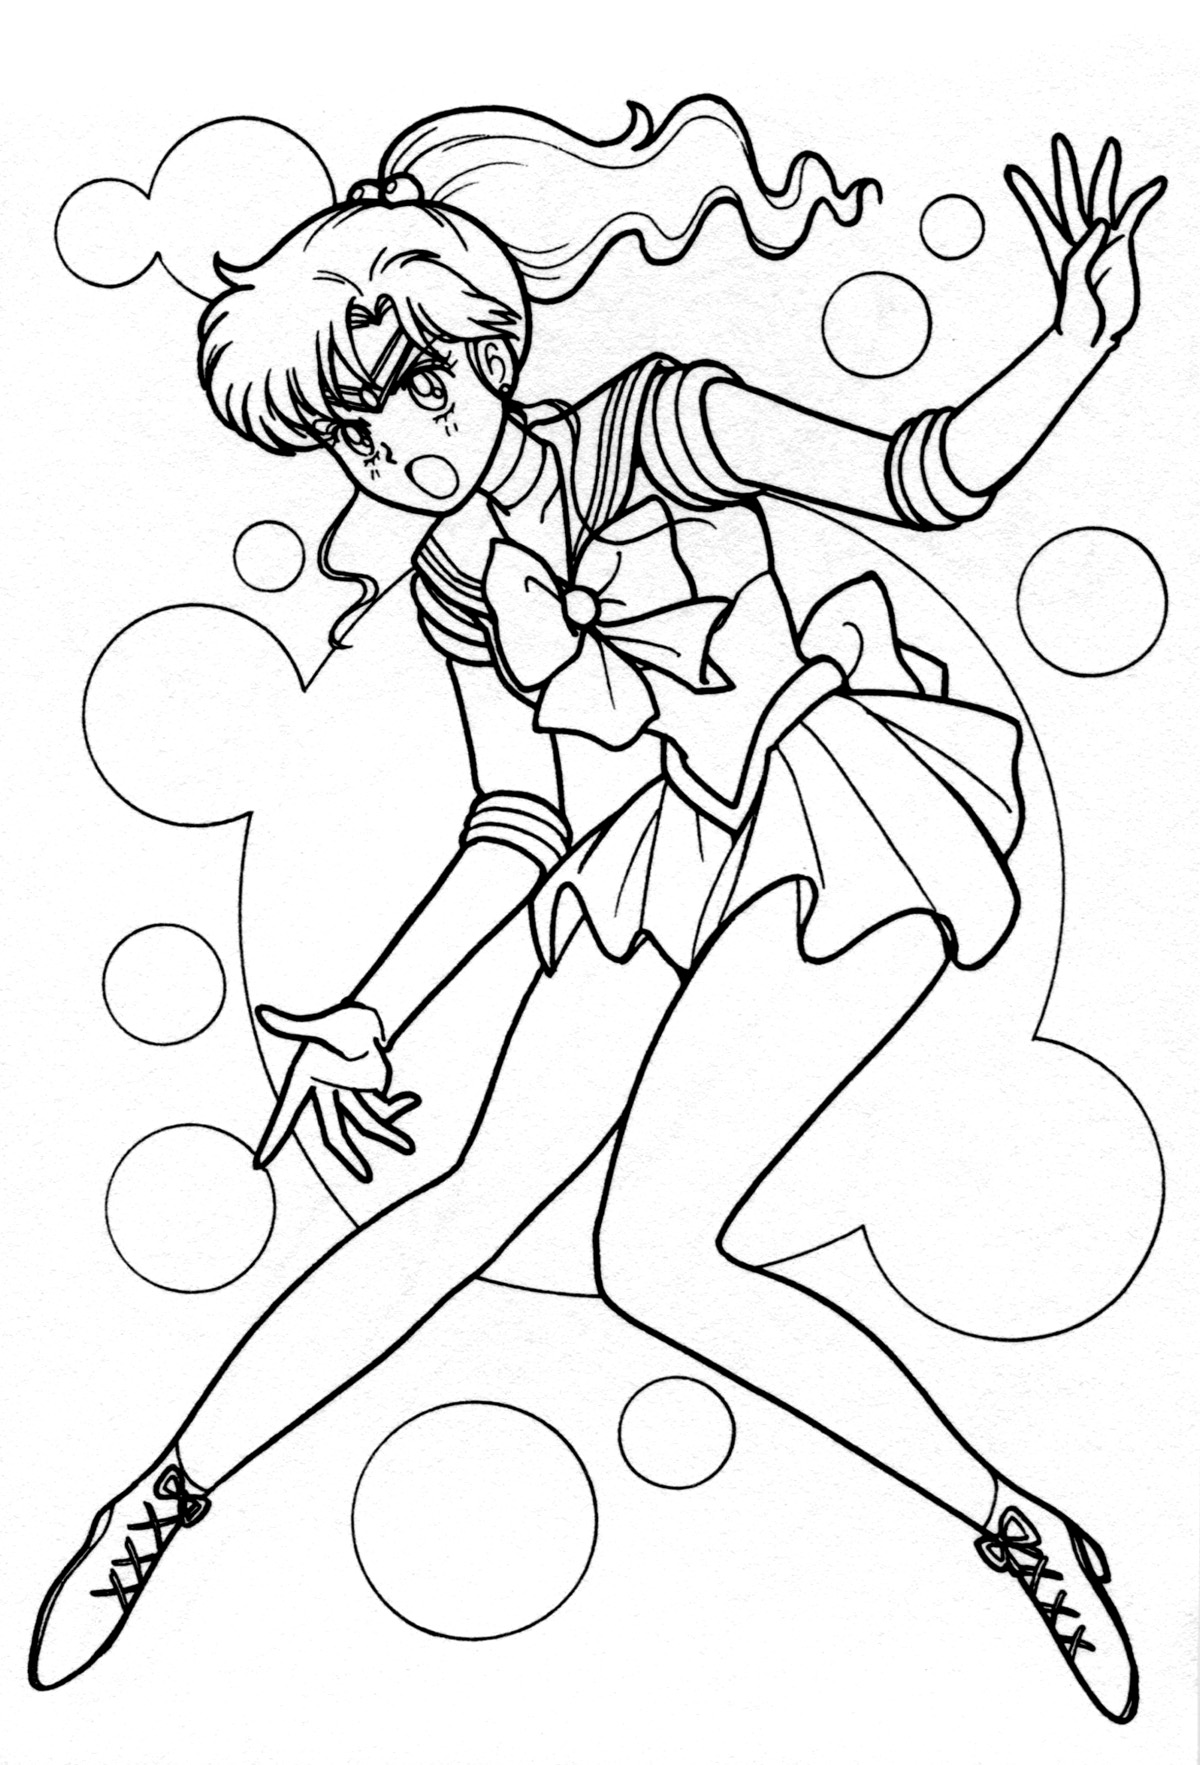 Sailor jupiter sailors and coloring pages on pinterest for Sailor jupiter coloring pages